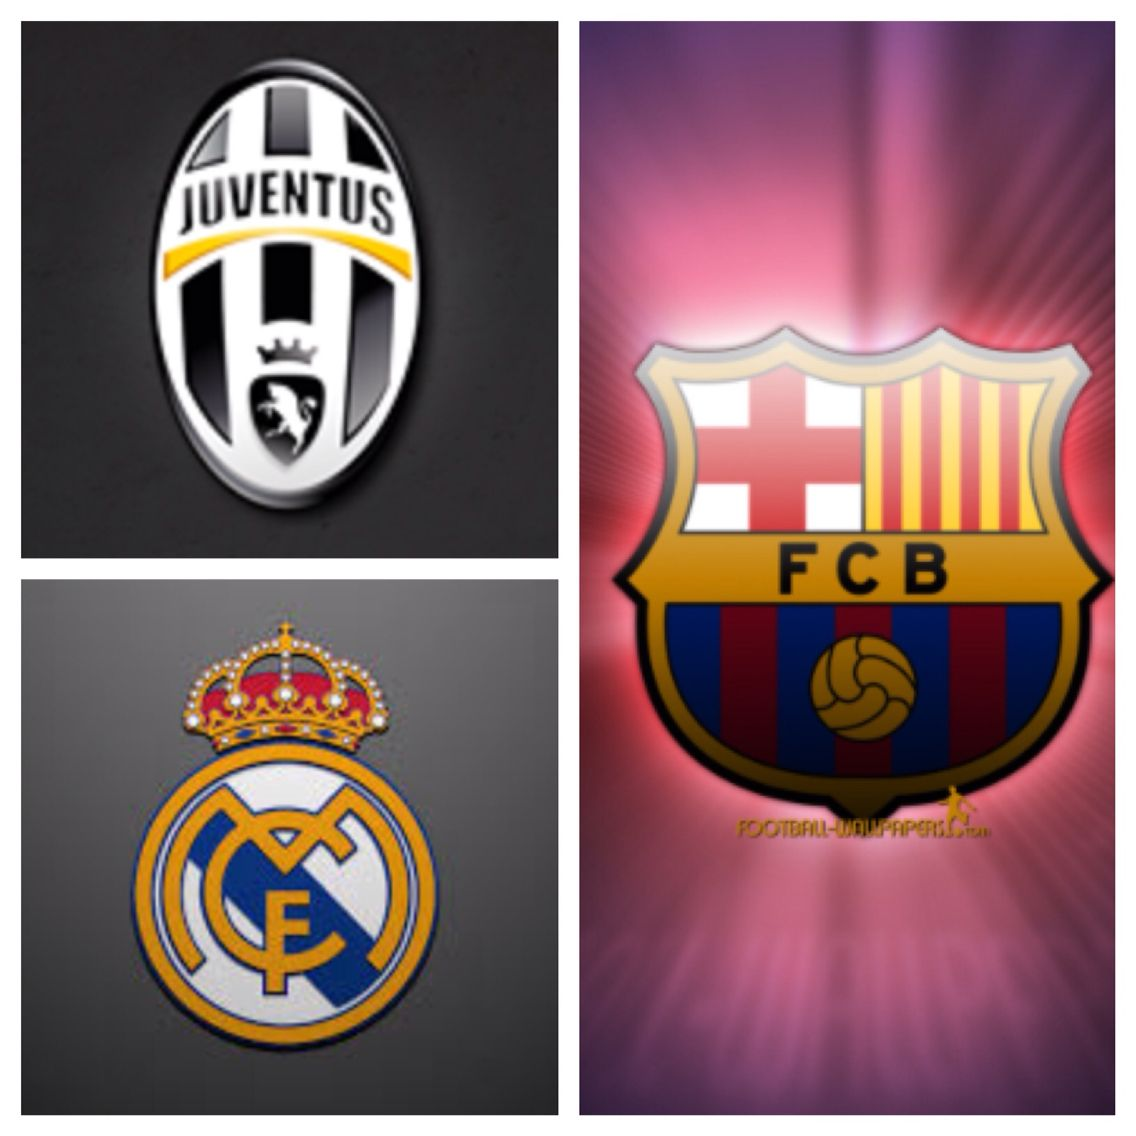 who will go on to the finals with barca real madrid or juventus juventus sport team logos team logo real madrid or juventus